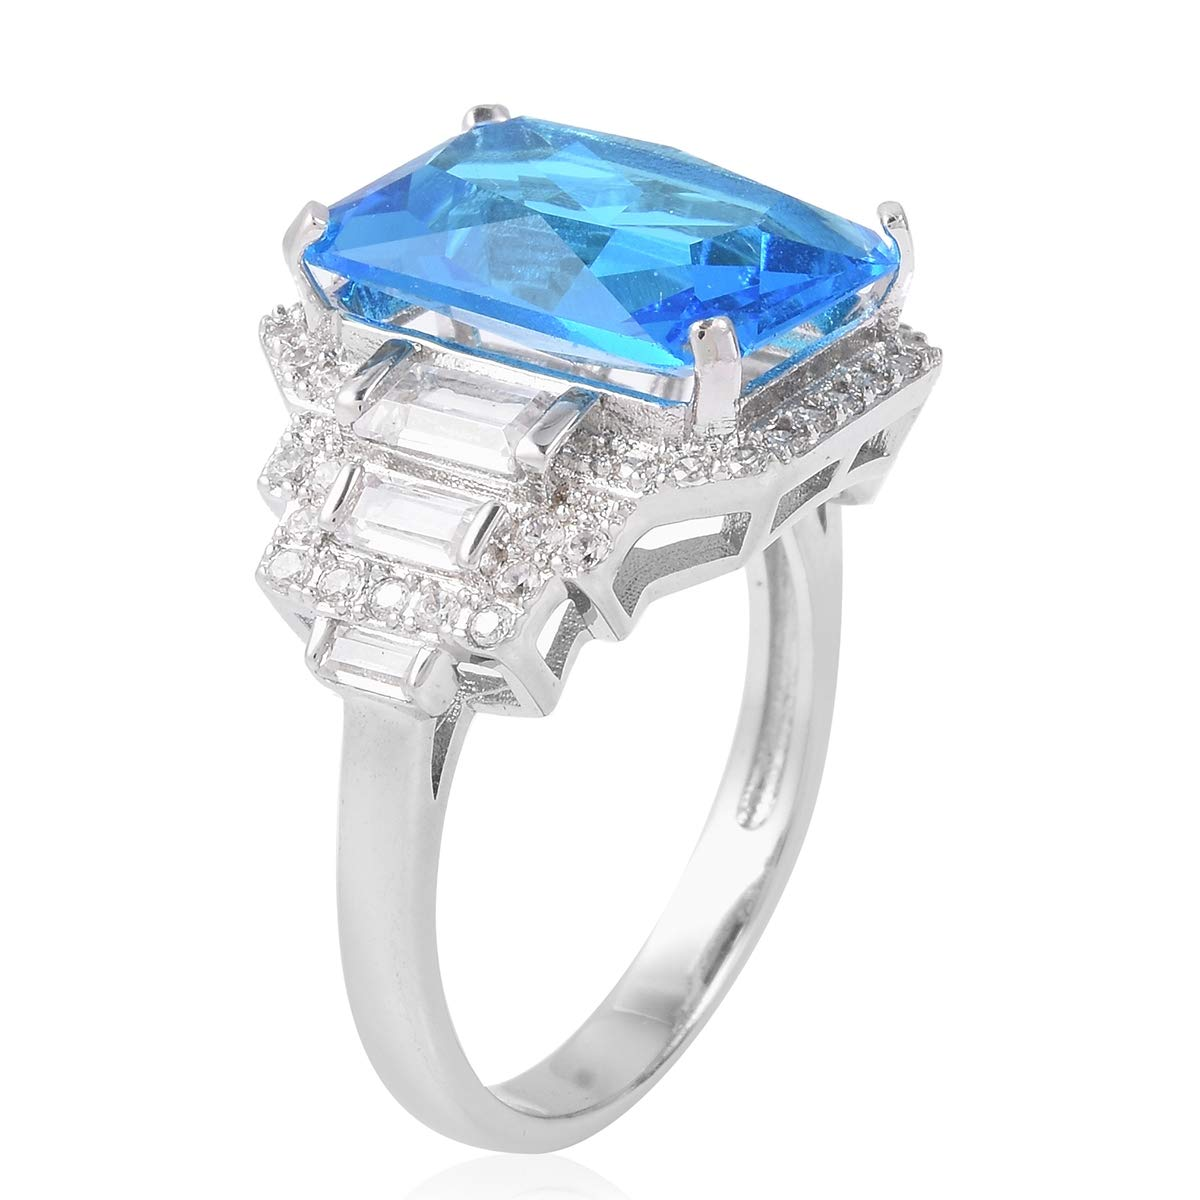 Shop LC Delivering Joy Statement Ring Octagon White Cubic Zirconia CZ Silvertone Gift Jewelry for Women Ct 1.2